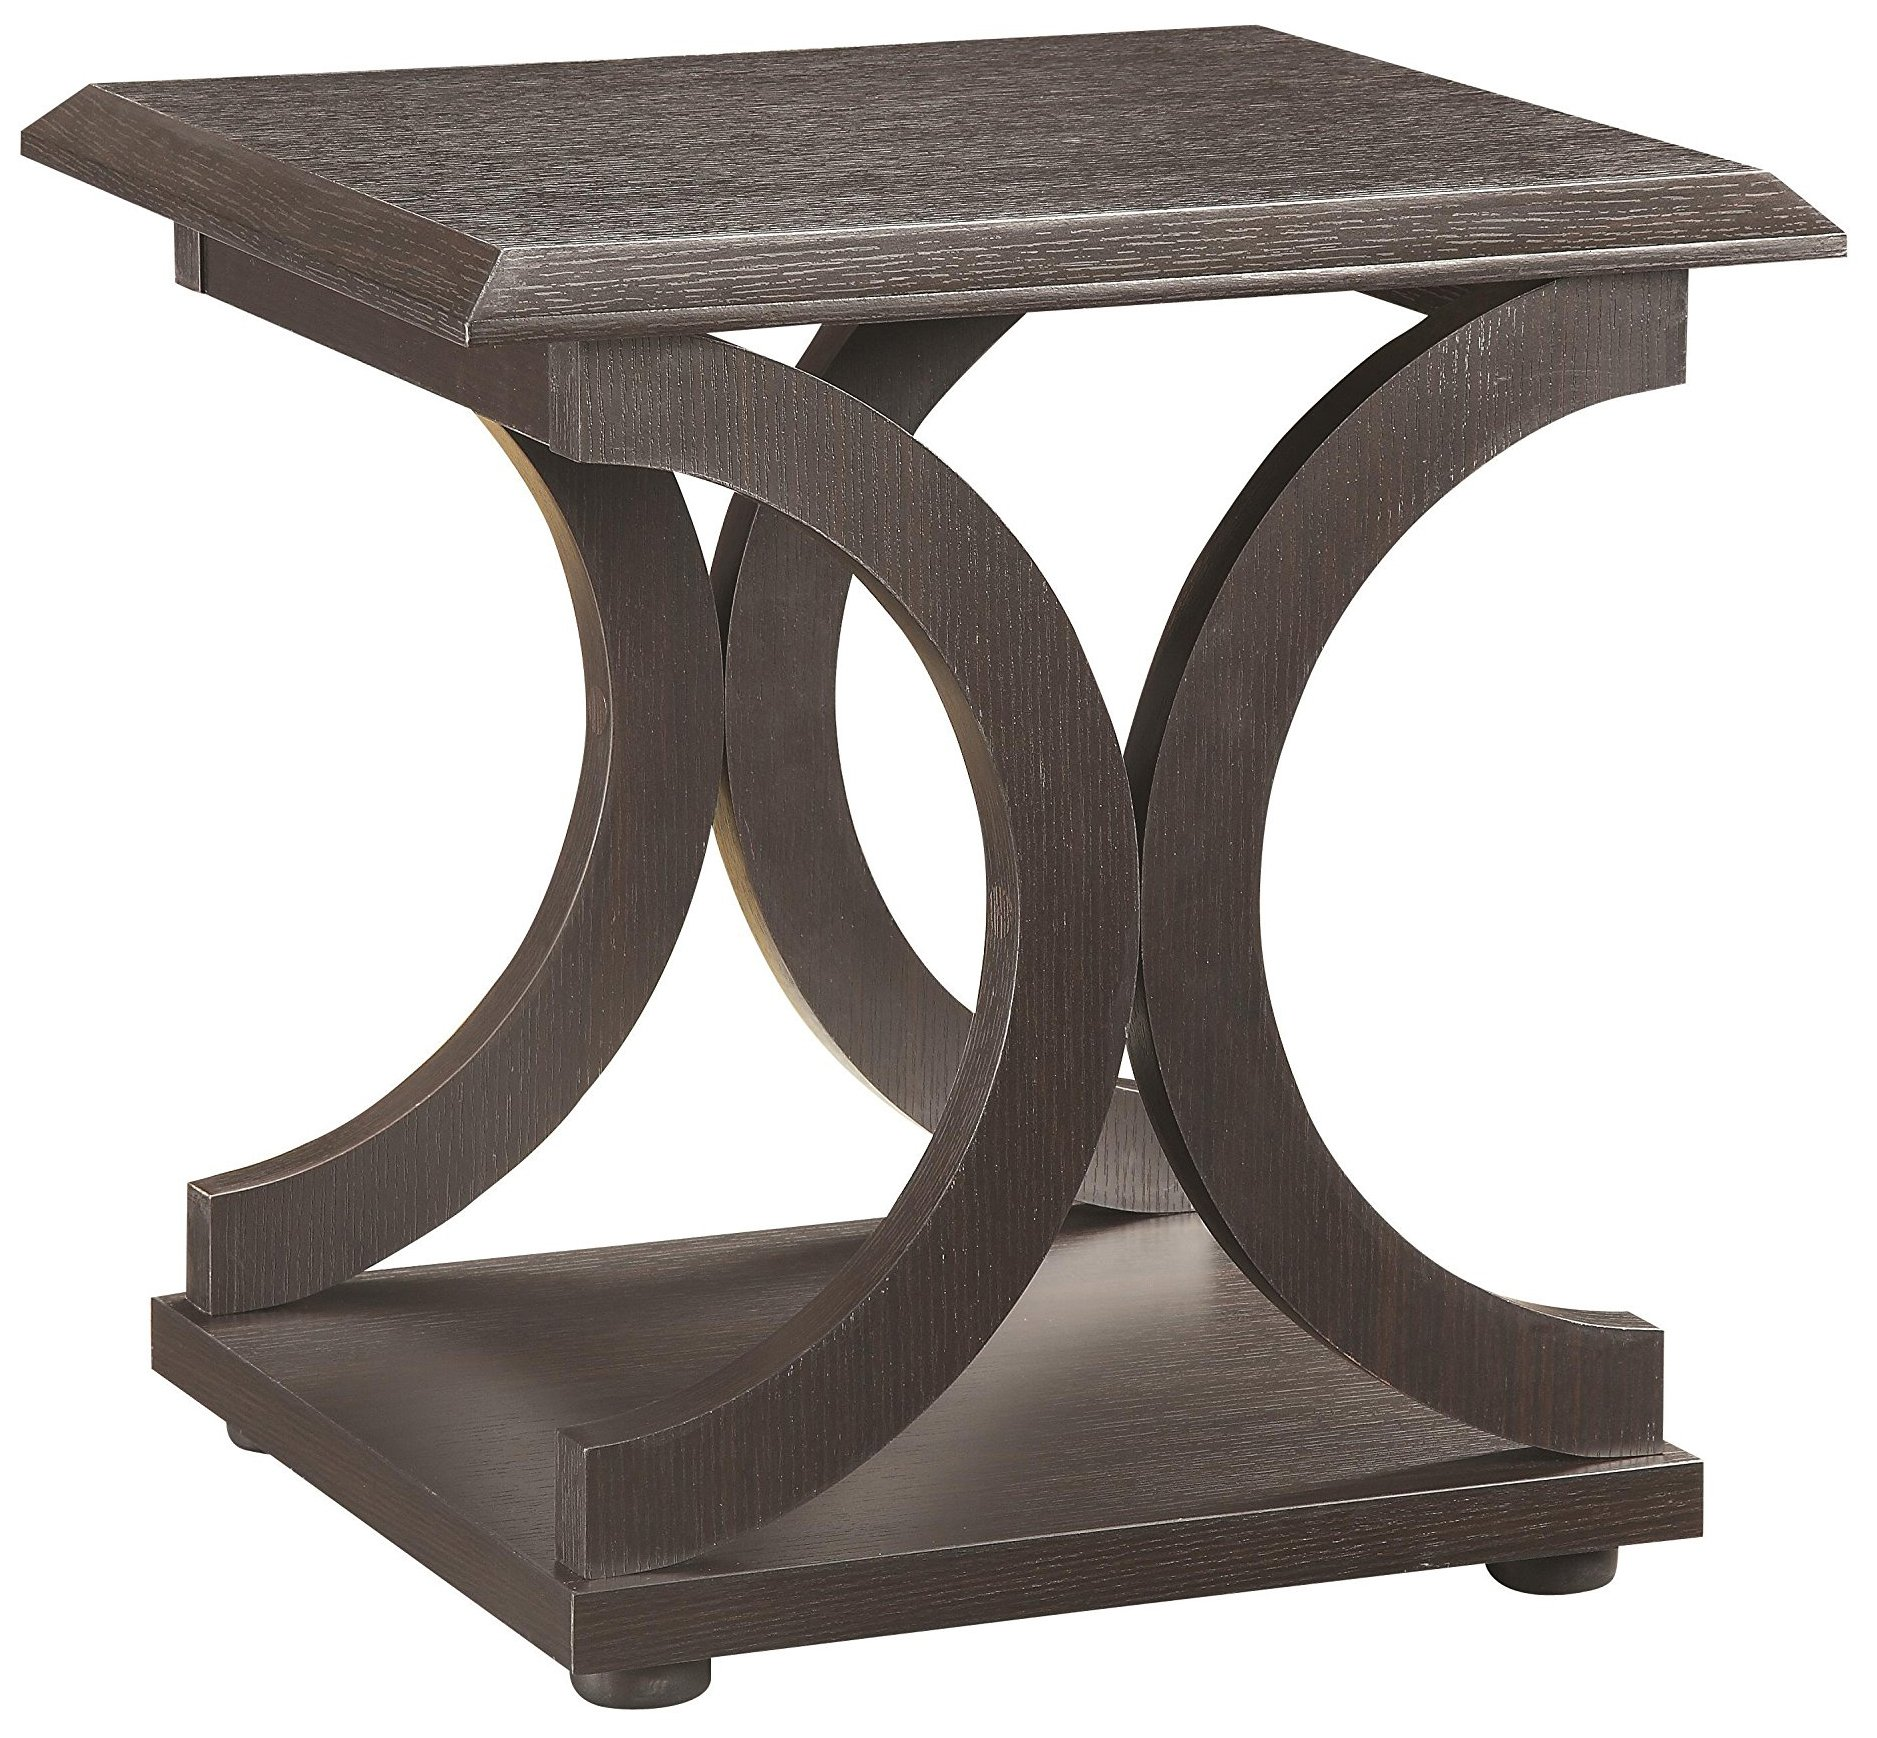 C-Shaped End Table Cappuccino by Coaster Home Furnishings